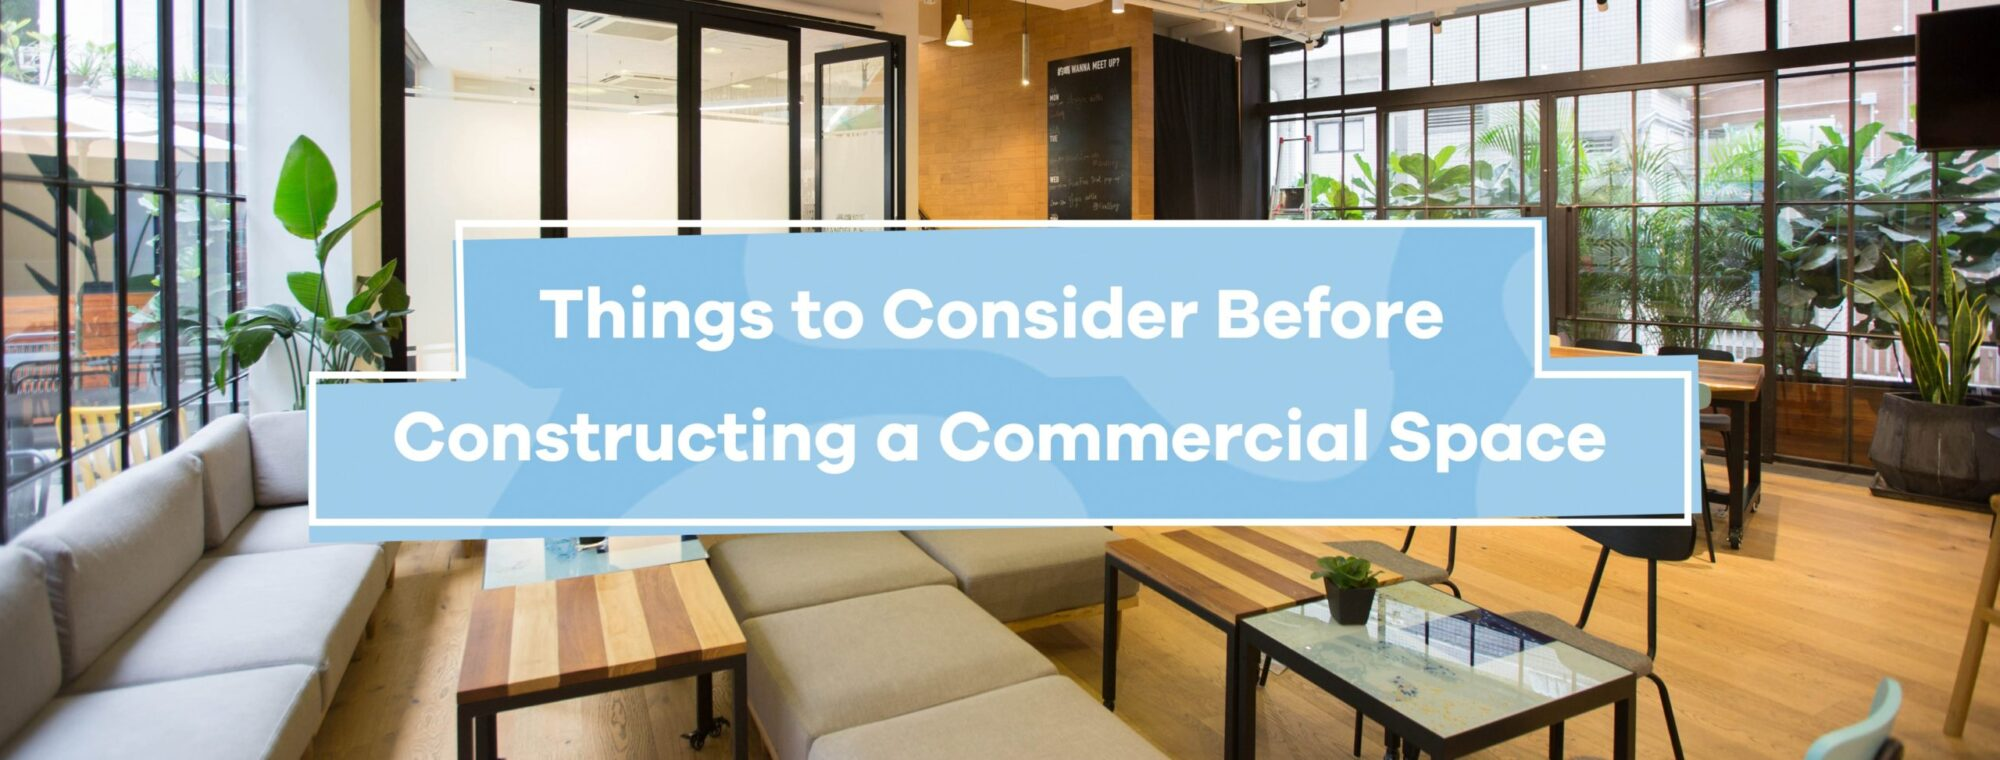 Things to Consider Before Constructing a Commercial Space